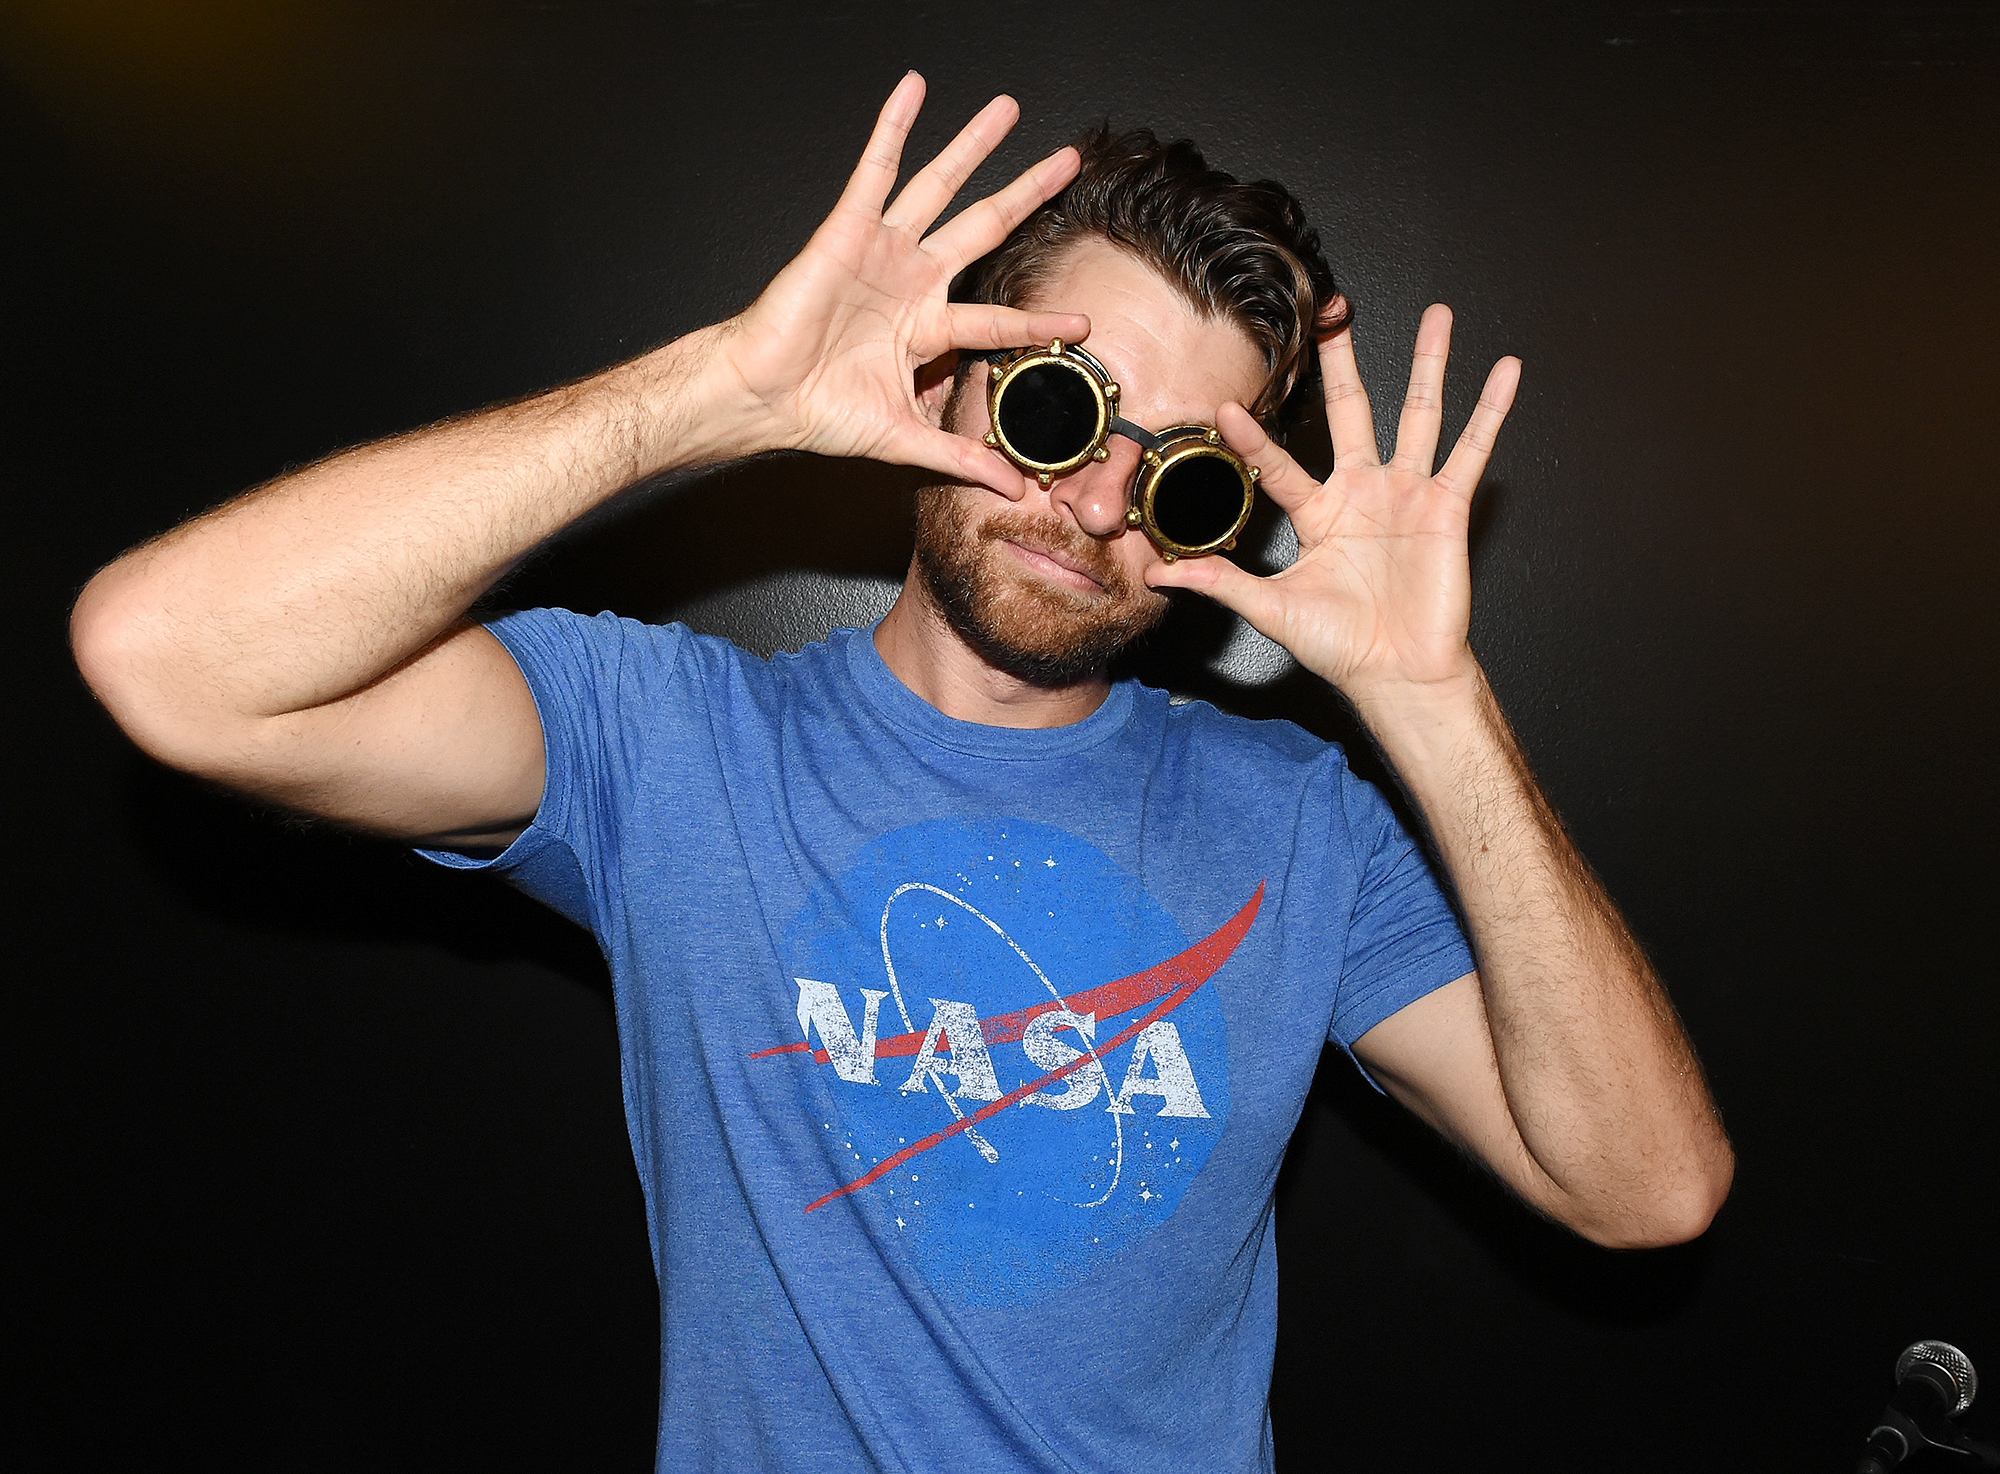 SiriusXM's The Highway Broadcasts Live During The Solar Eclipse In Nashville Featuring A Live Performance By Brett Eldredge